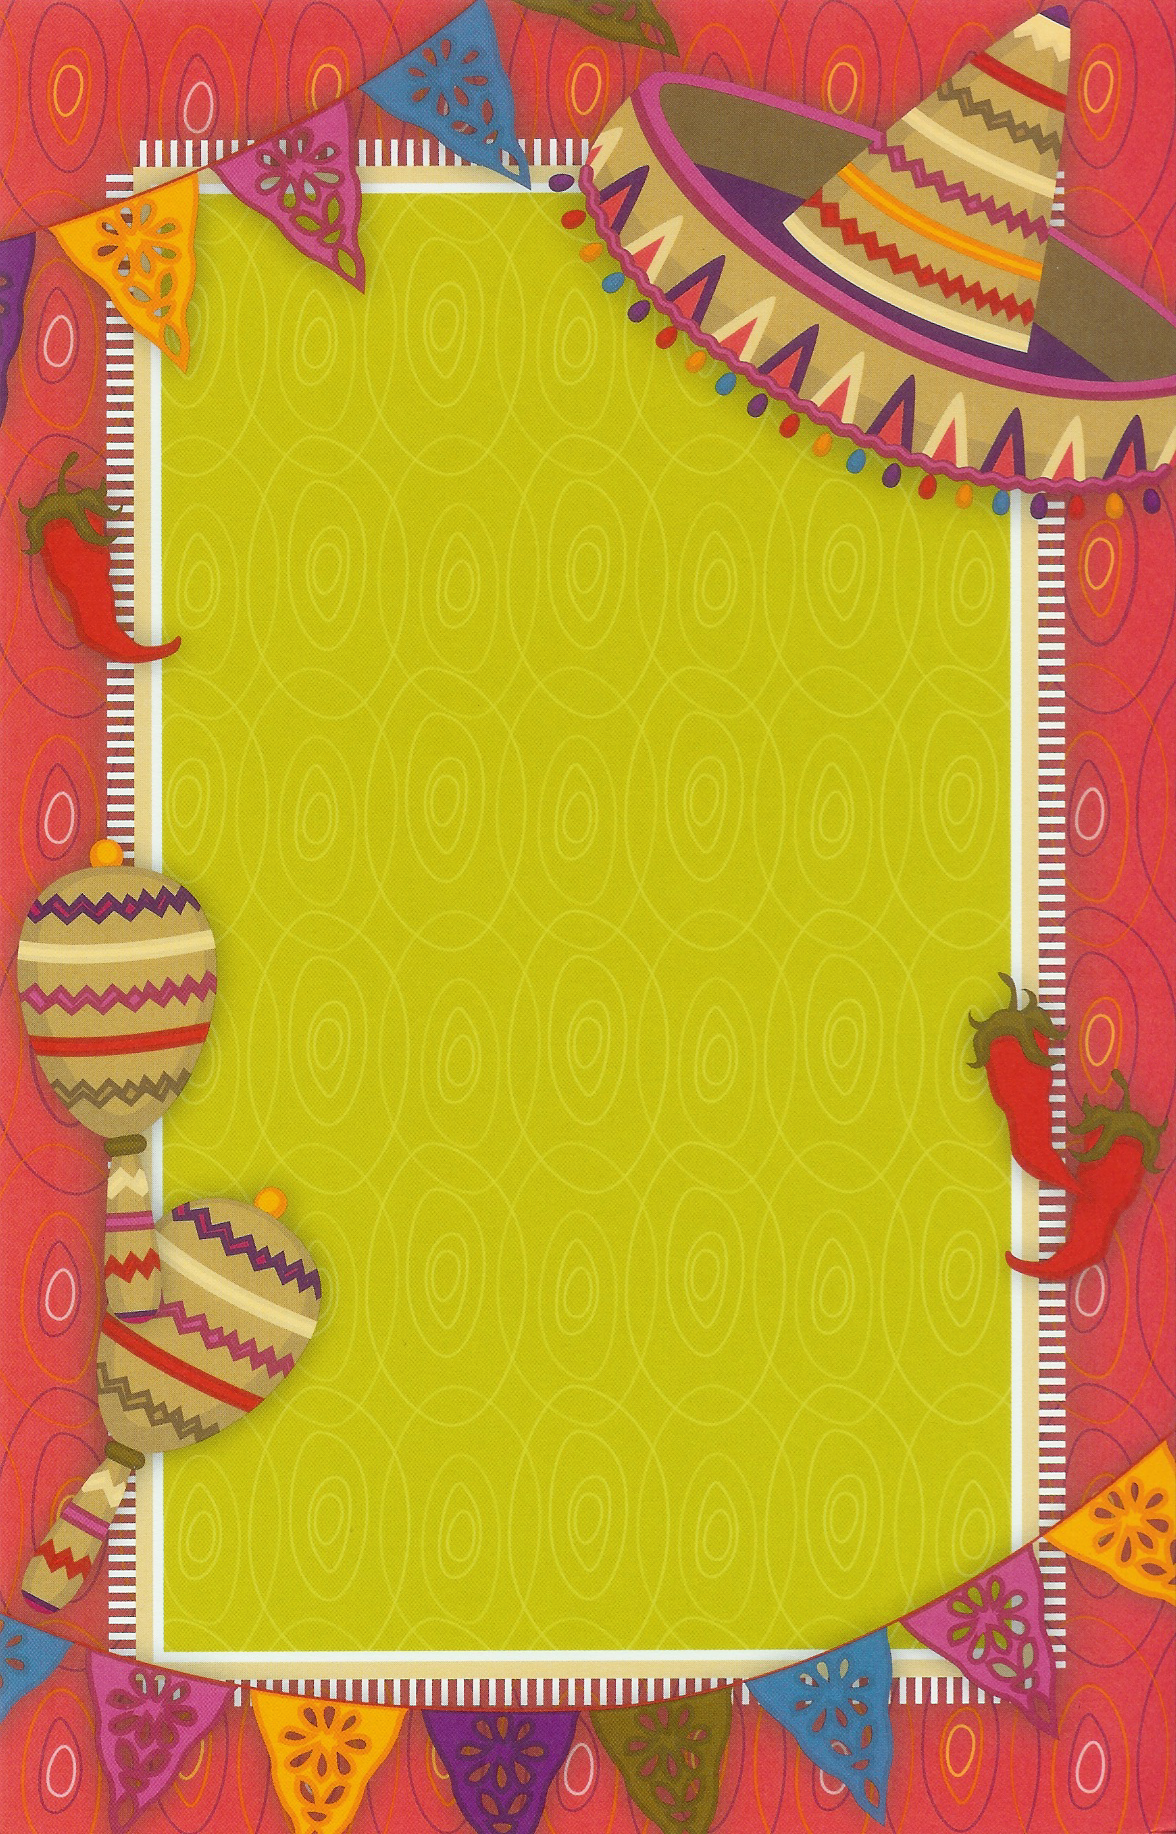 Hot Fiesta Invitation Cards and free printable fiesta ...